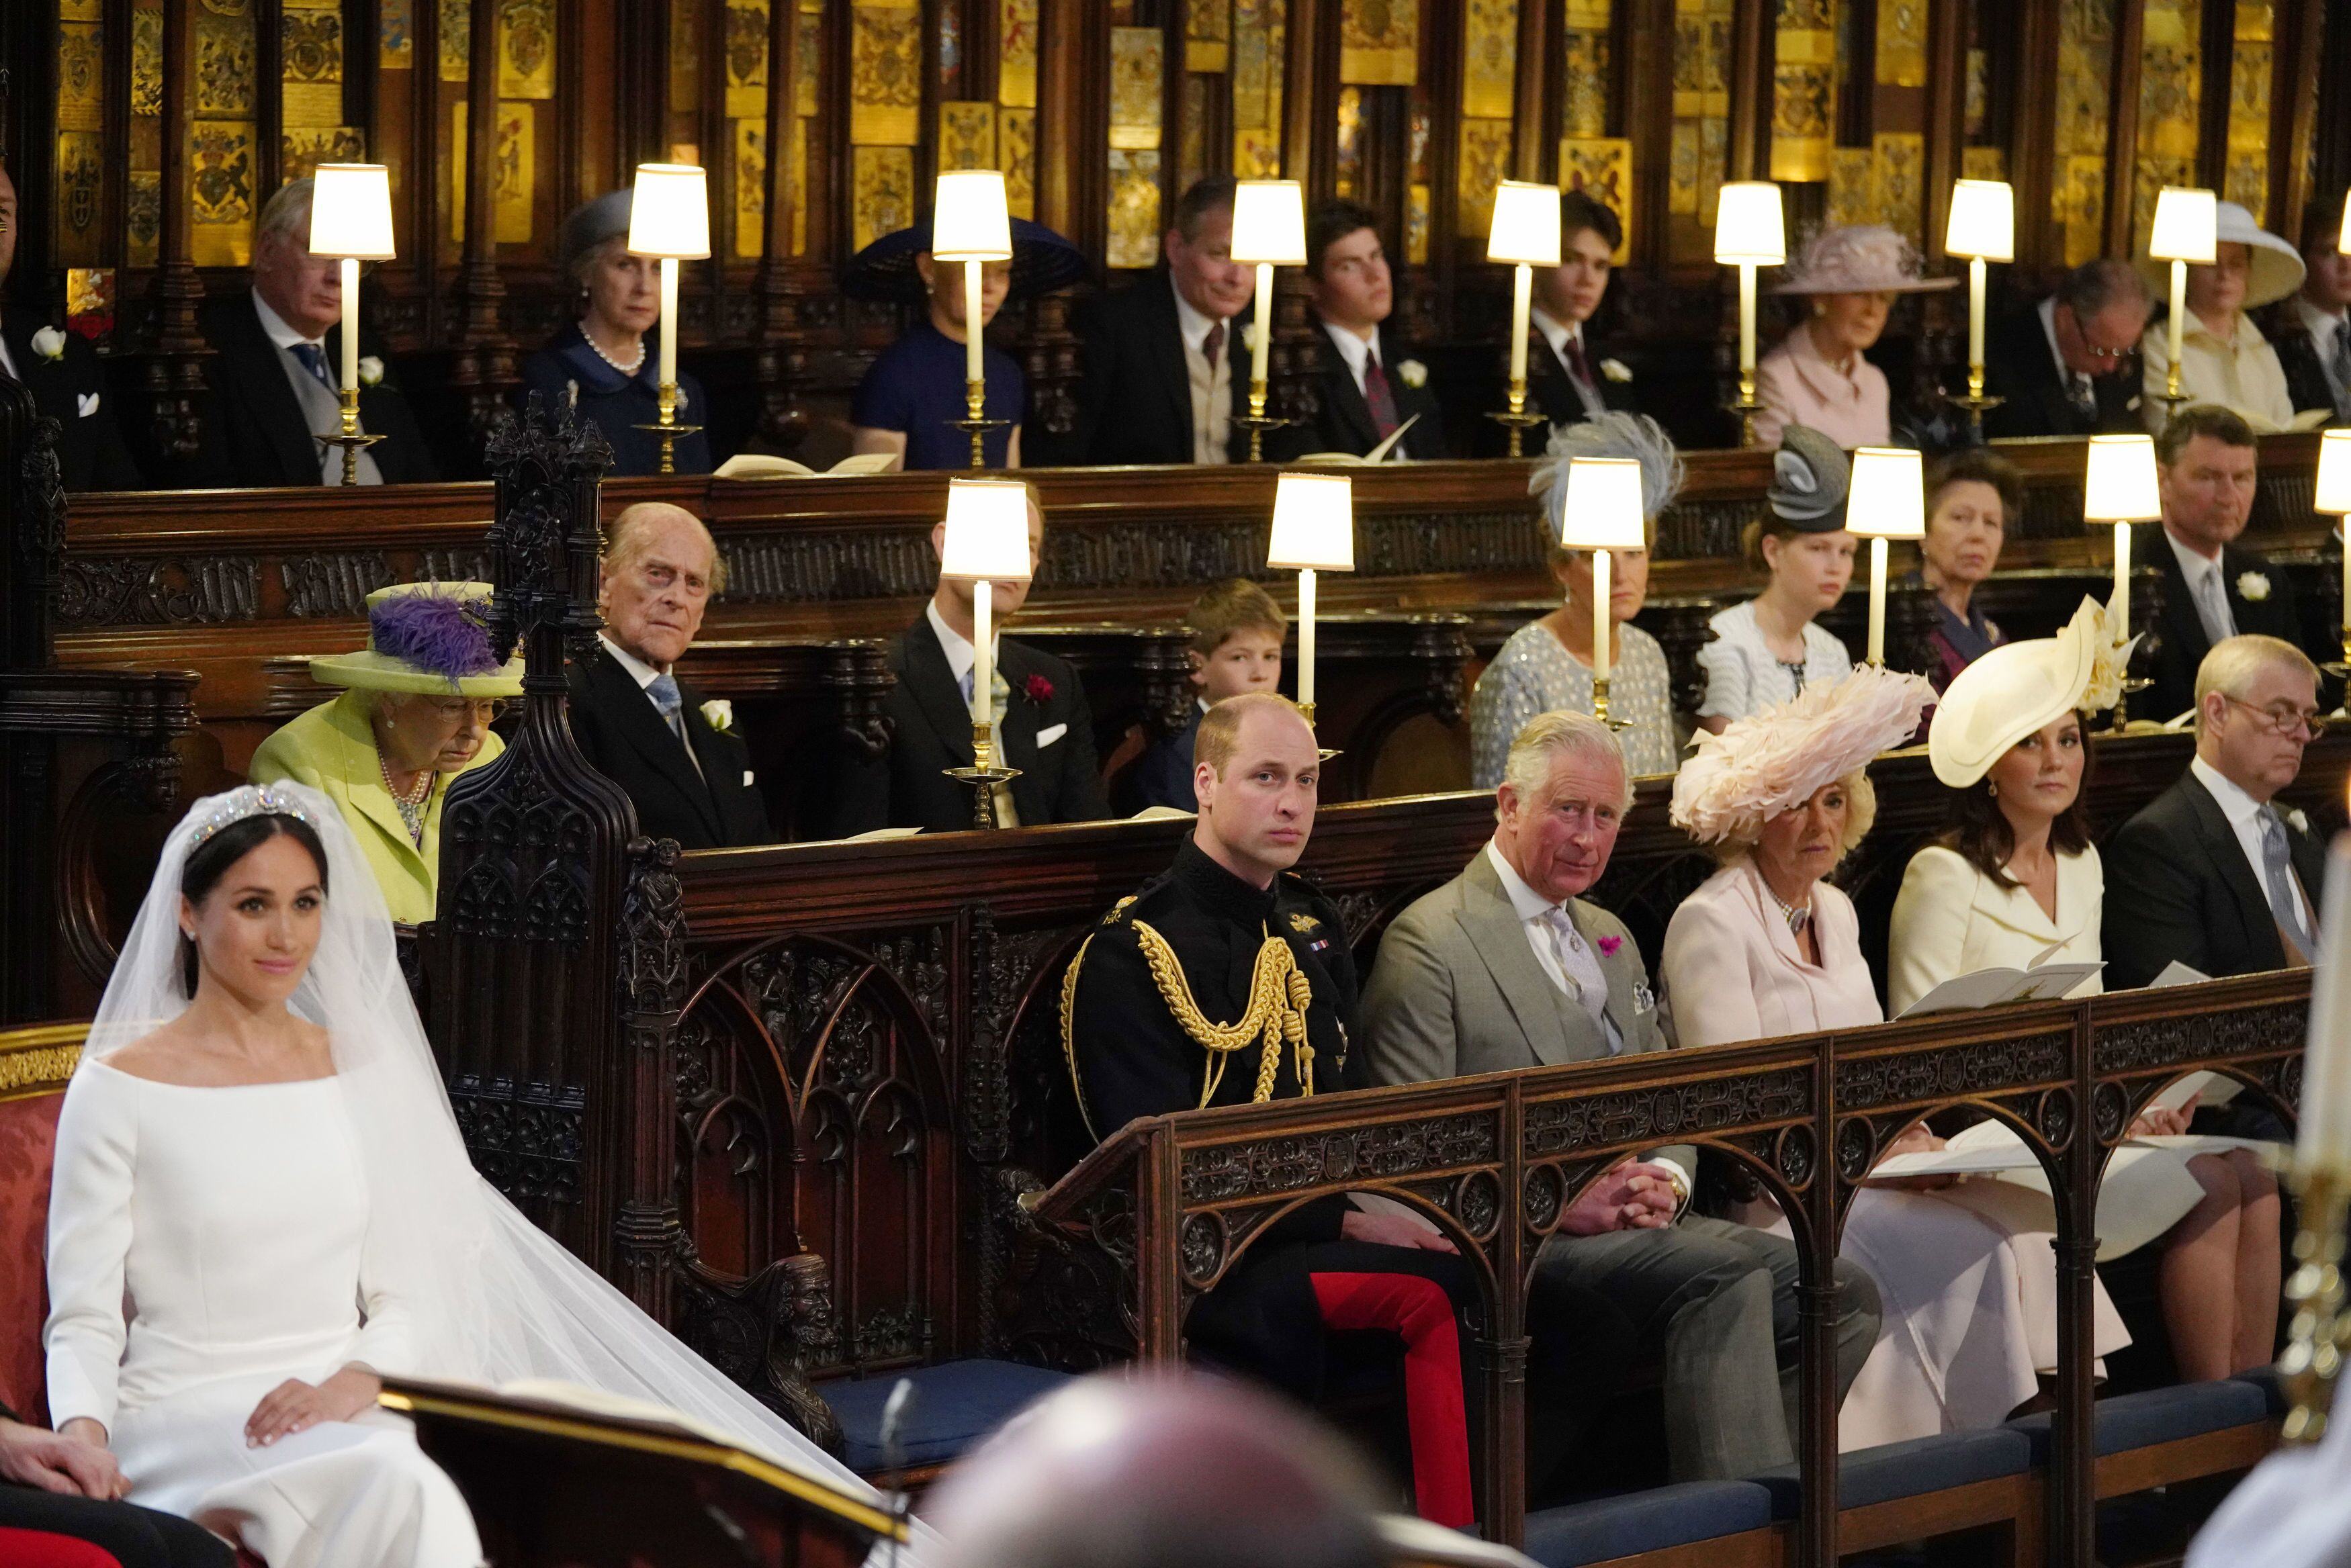 Meghan Markle and guests during the royal wedding. | Source: Getty Images